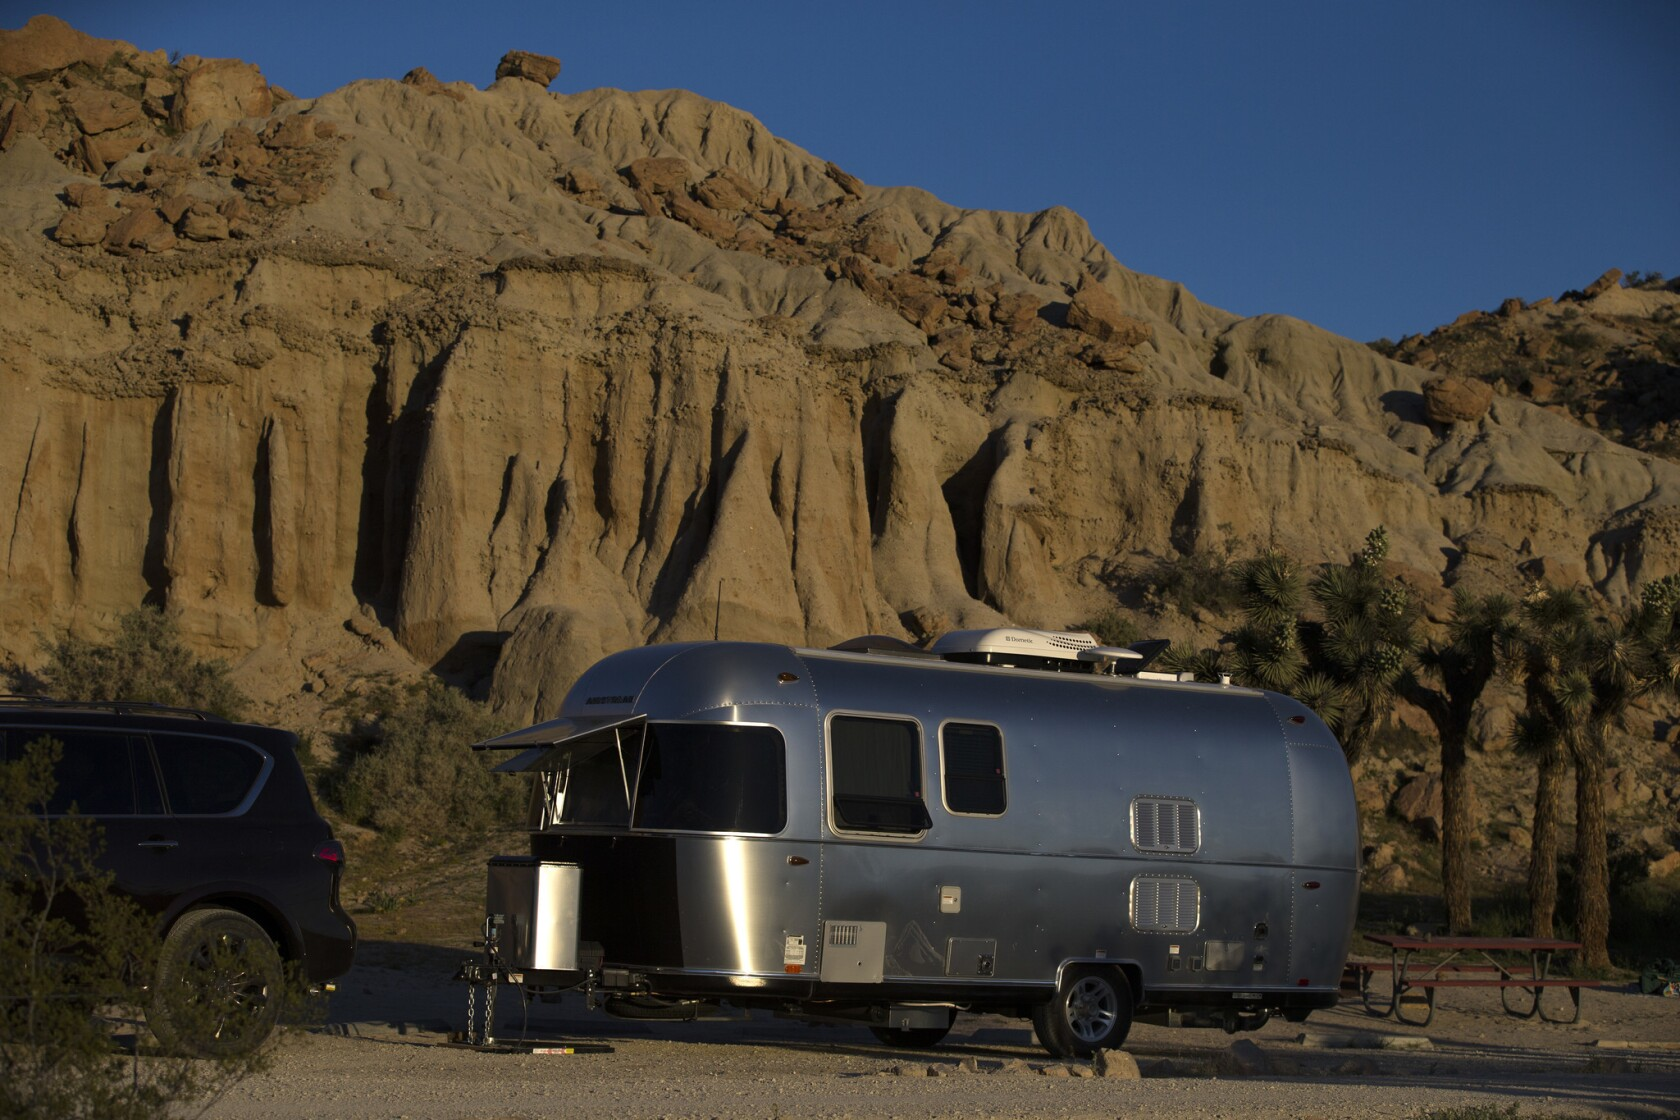 22 feet of fun fraught with fear — that was our Airstream